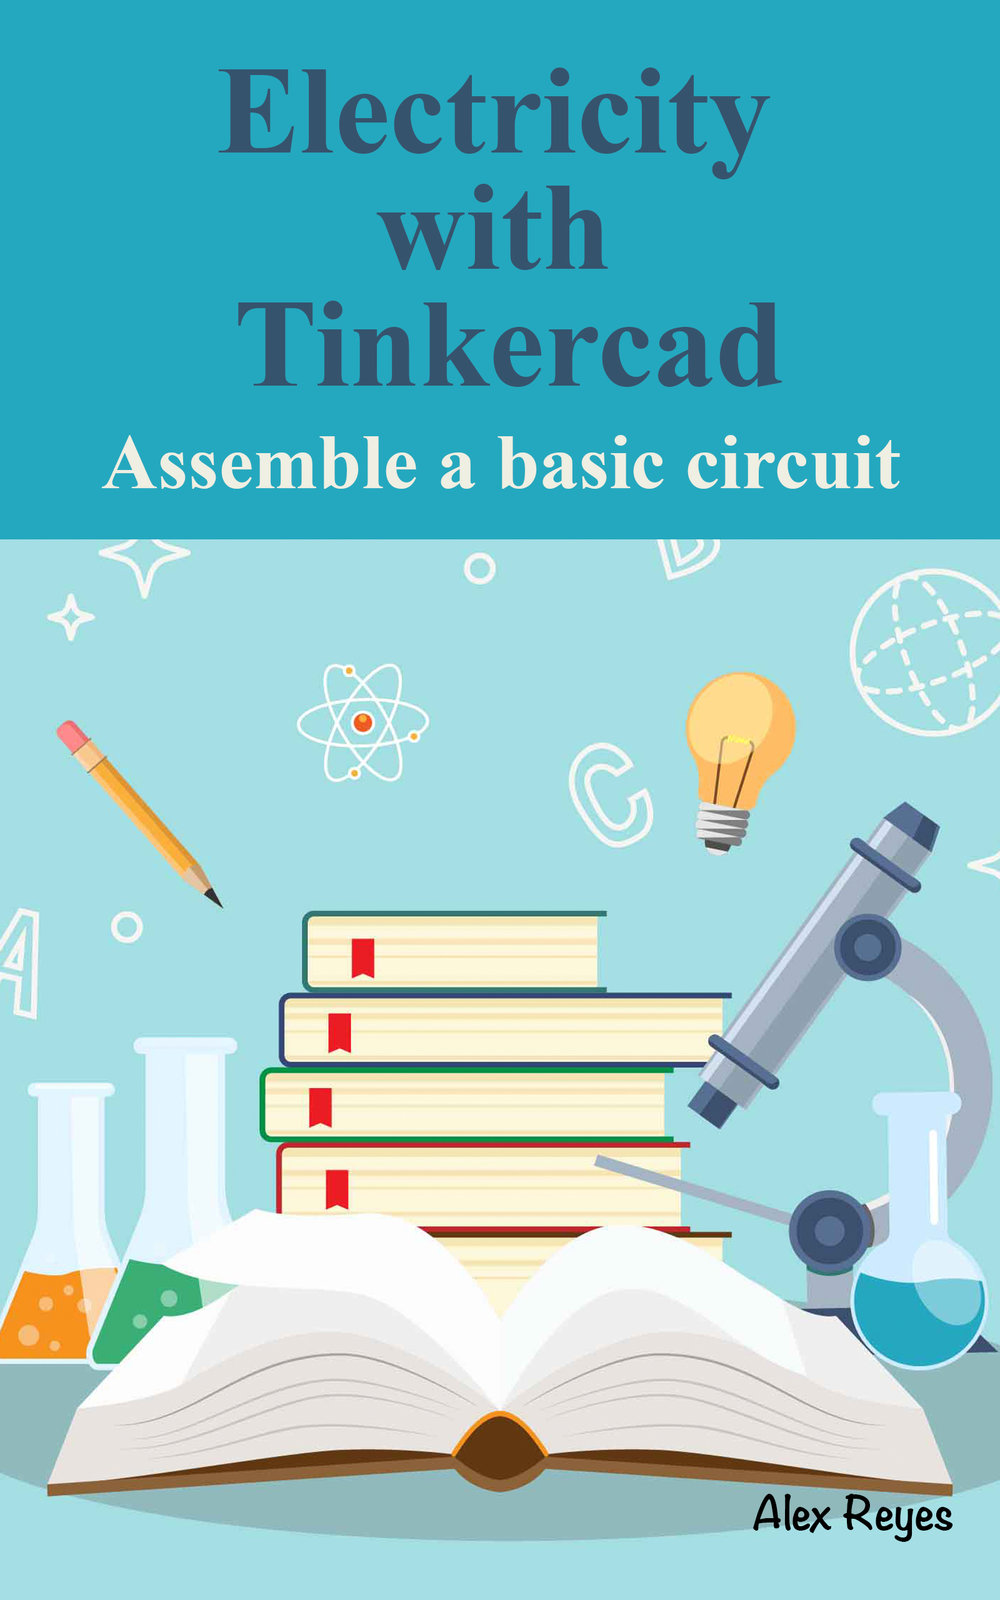 Electricity with Tinkercad